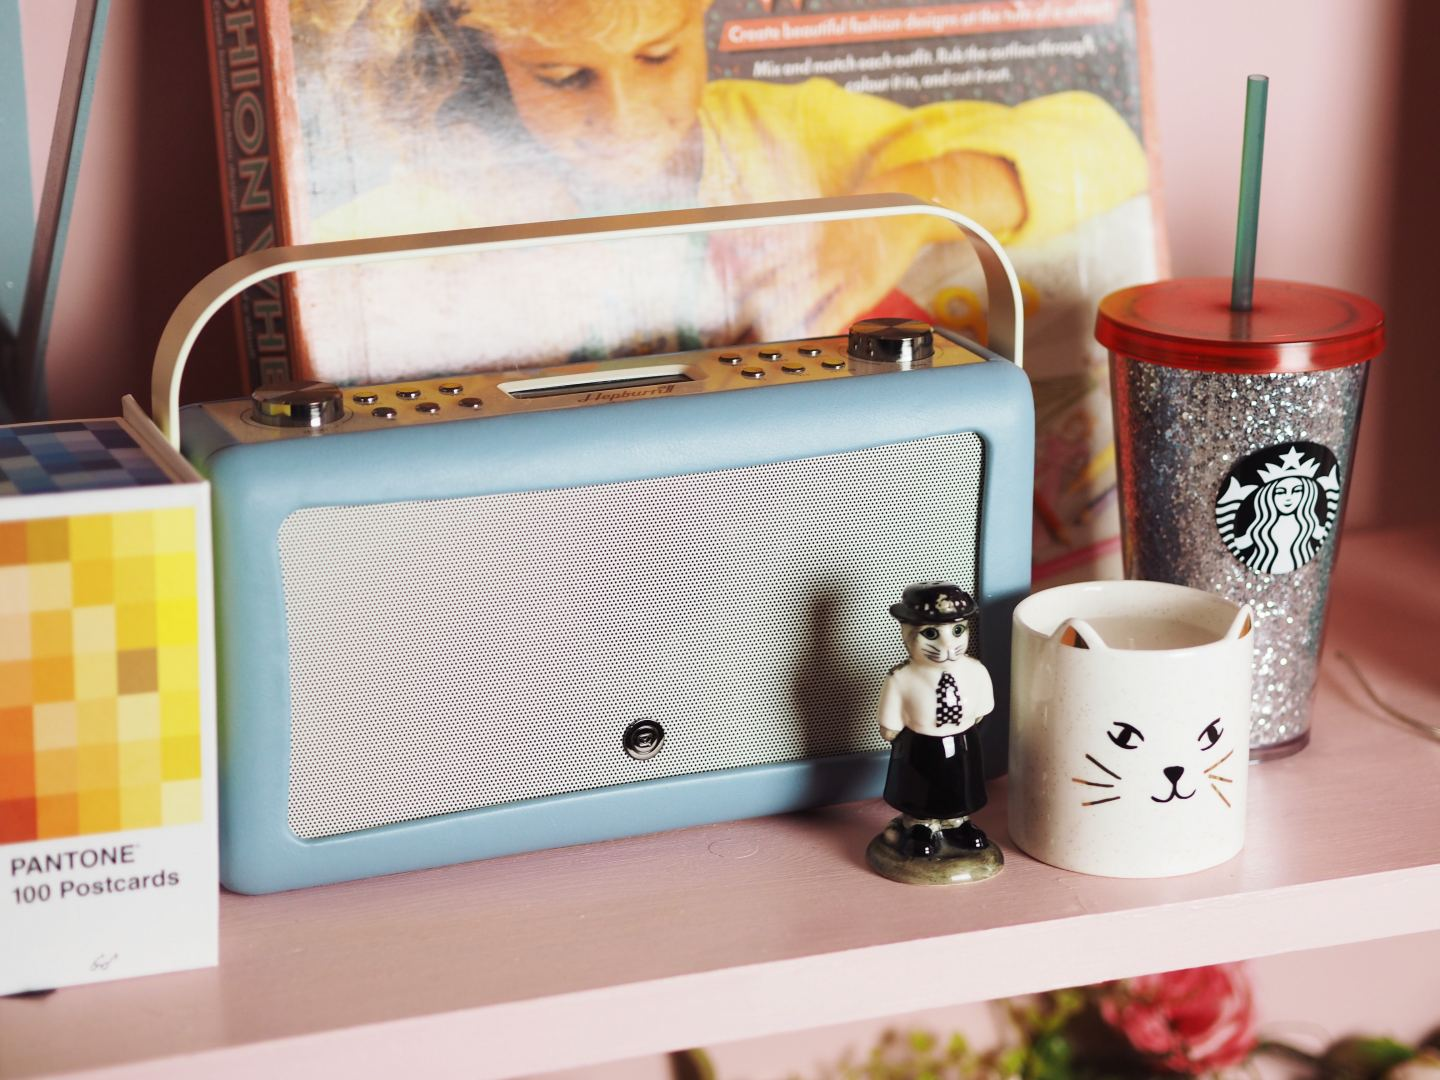 vintageDAB radio my vq bluetooth DAB shelfie